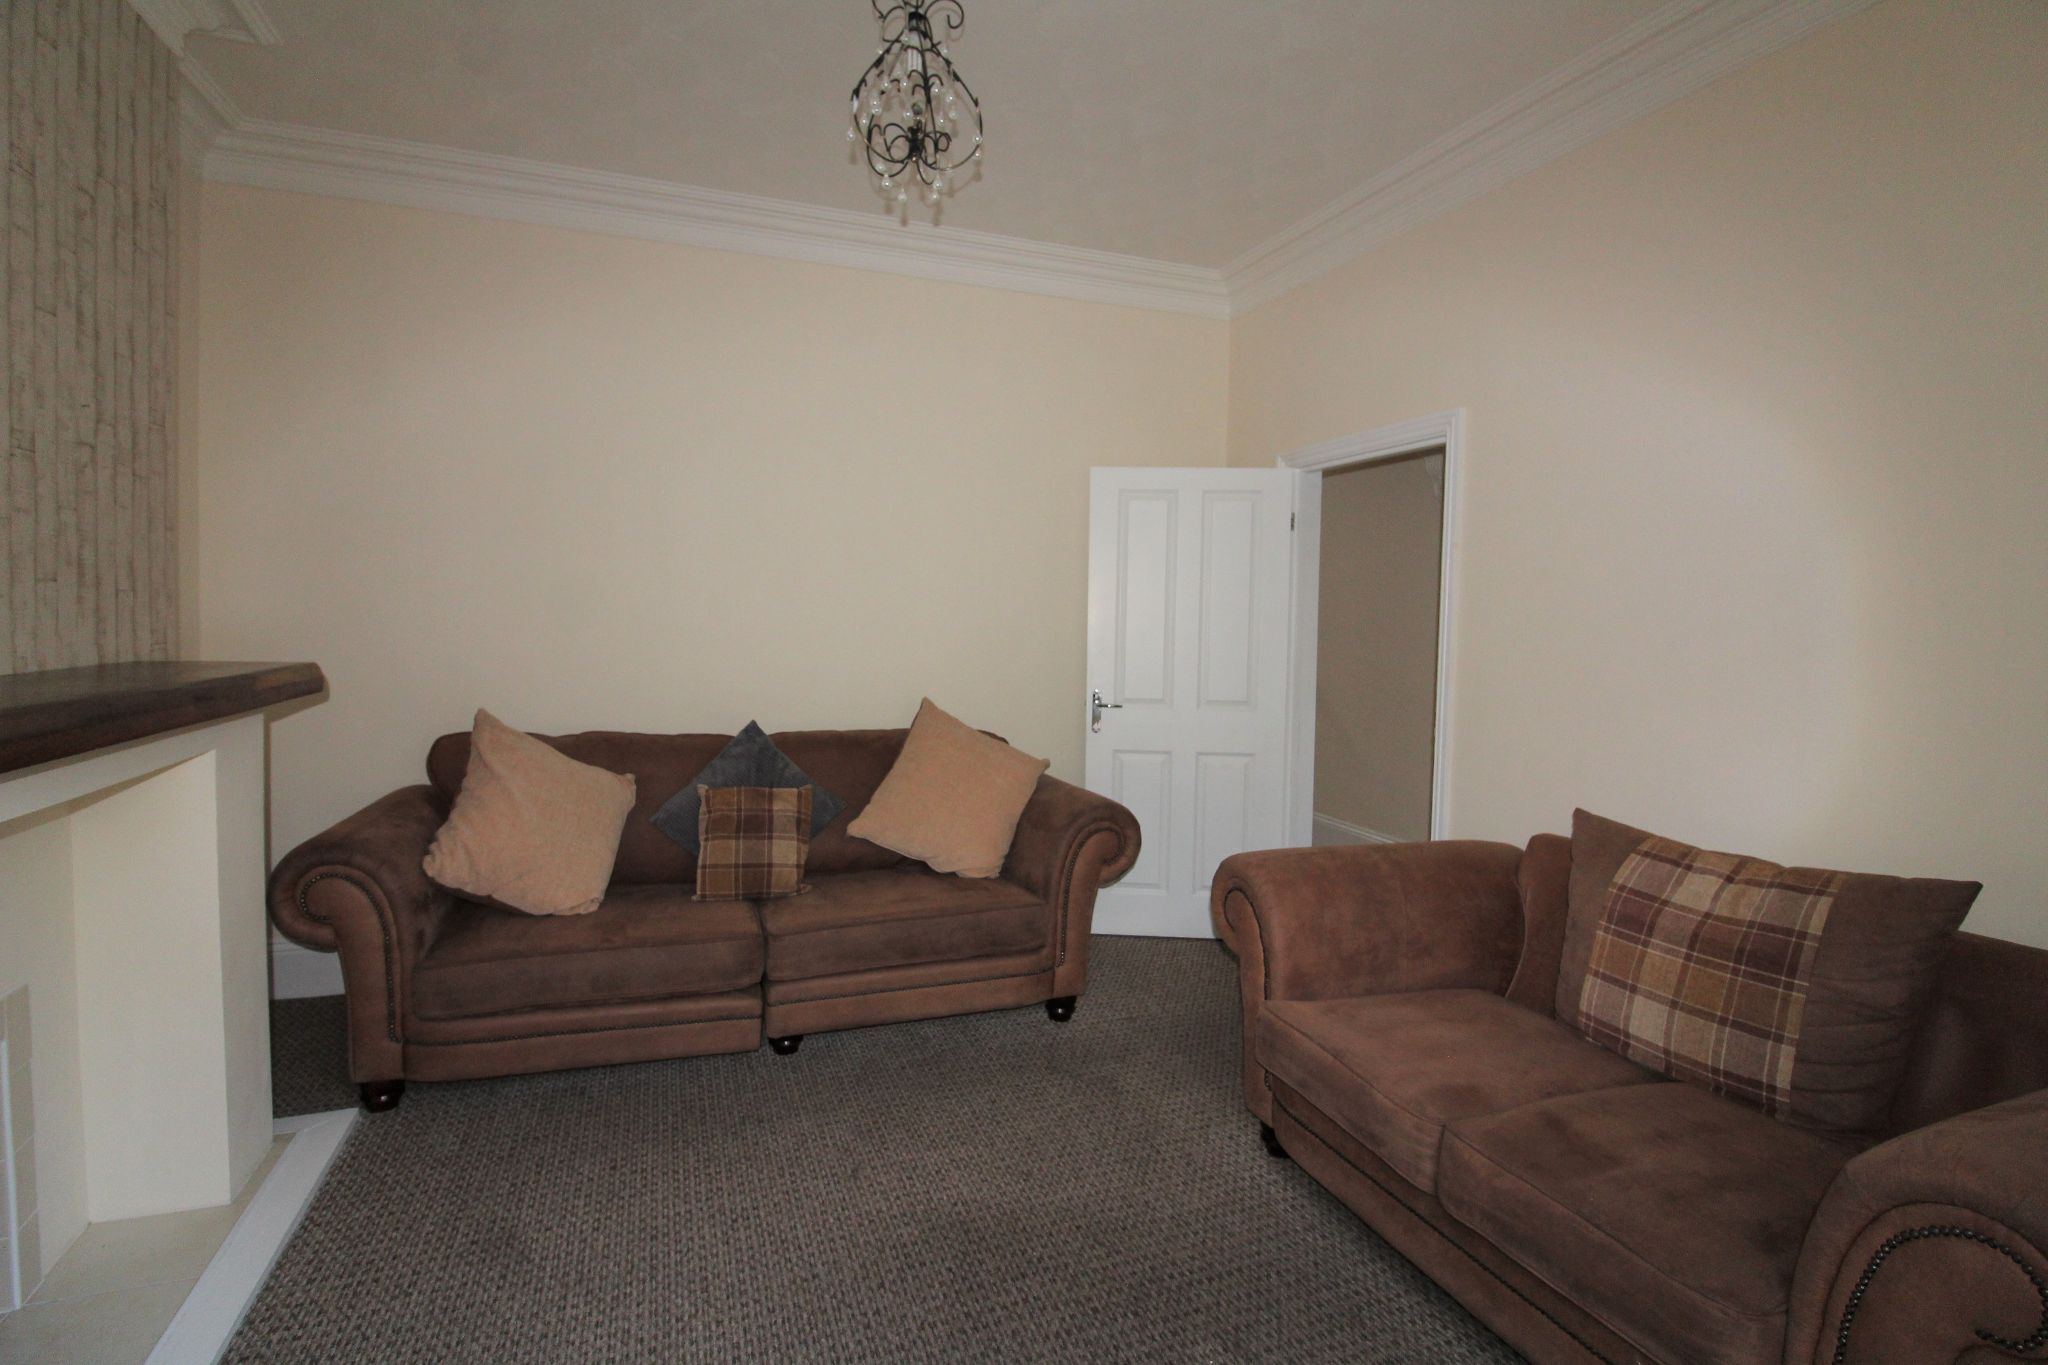 3 bedroom mid terraced house For Sale in Crook - Photograph 4.